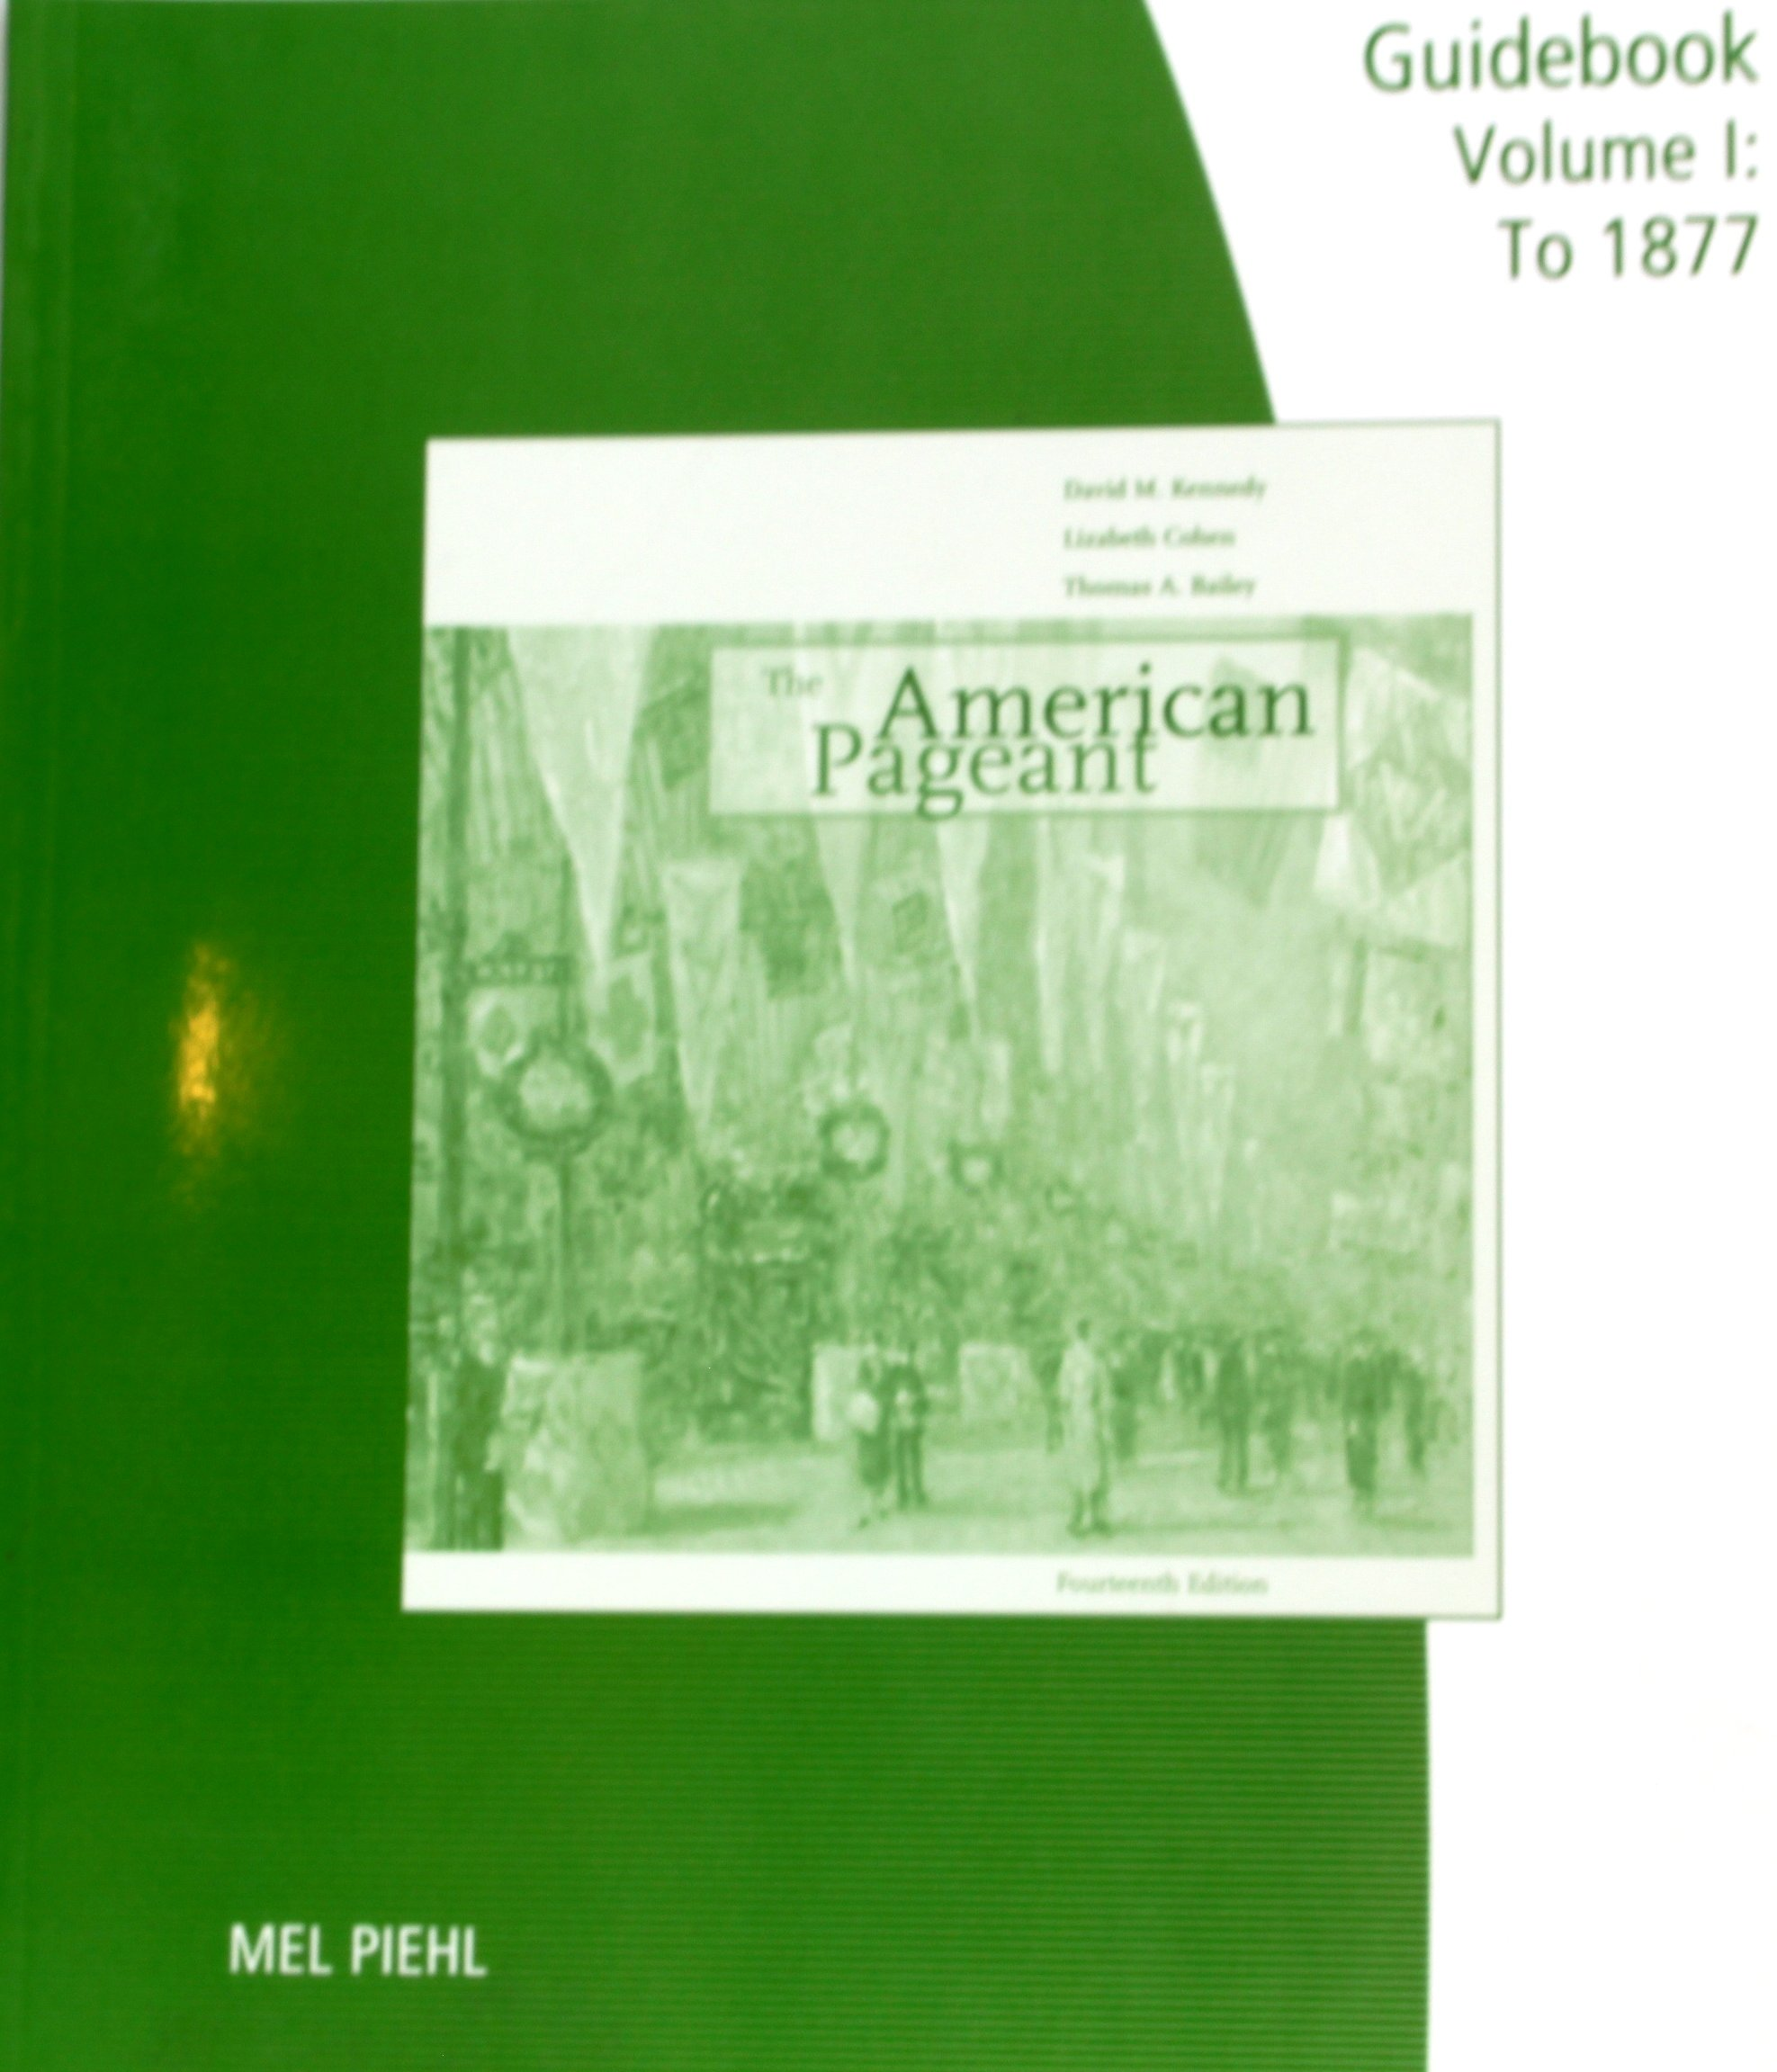 American Pageant Guidebook, Vol. 1: To 1877, 14th Edition: David Kennedy:  9780547167008: Amazon.com: Books